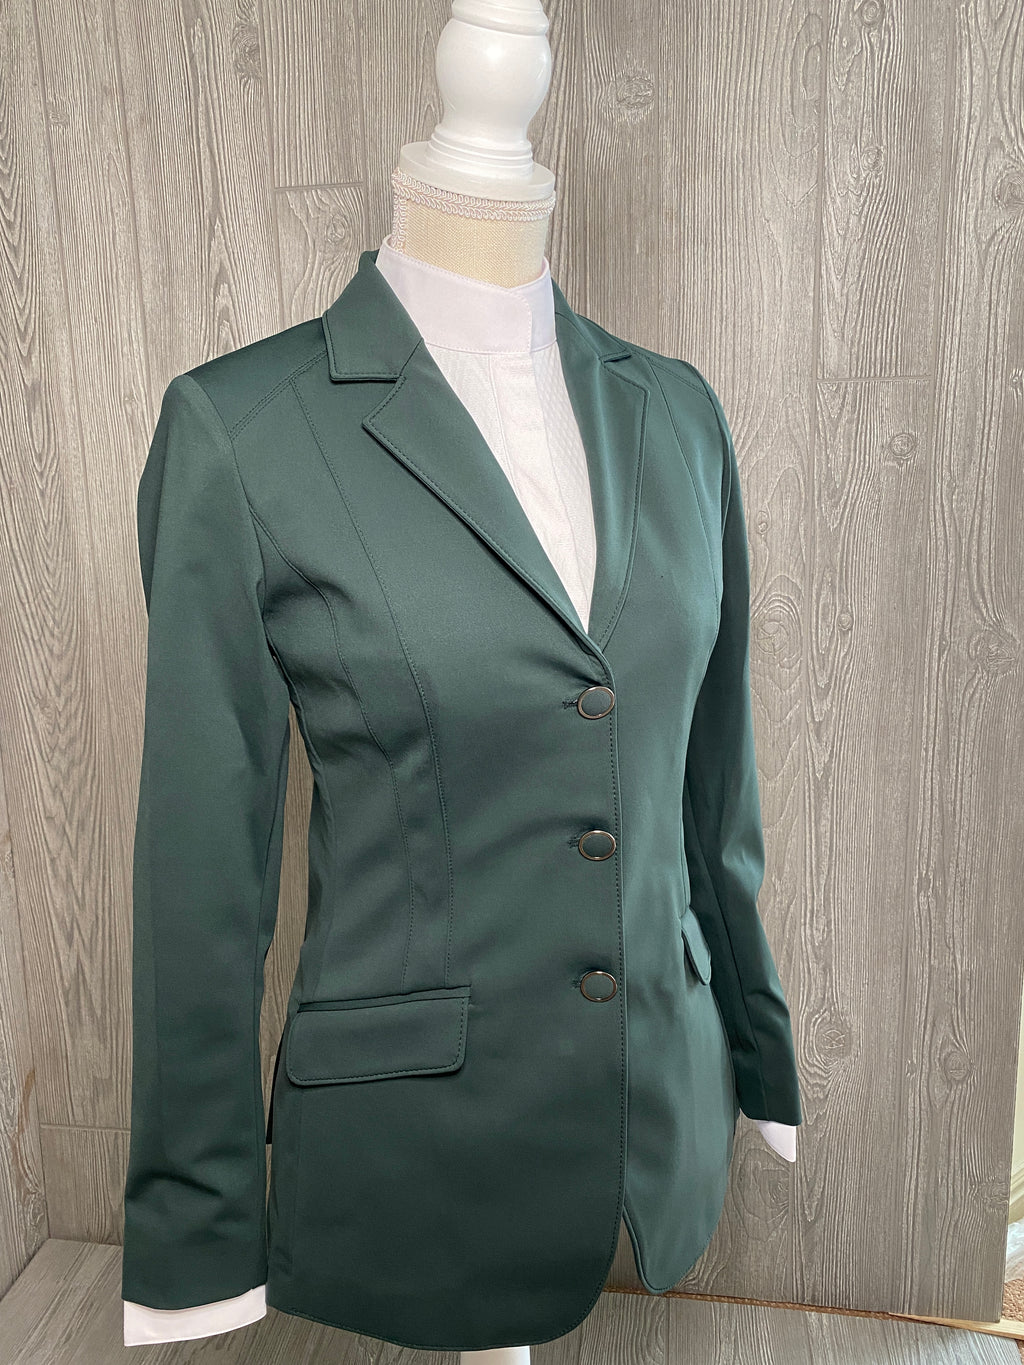 Animo Show Jacket LP_US - Bottiglia (hunter green)